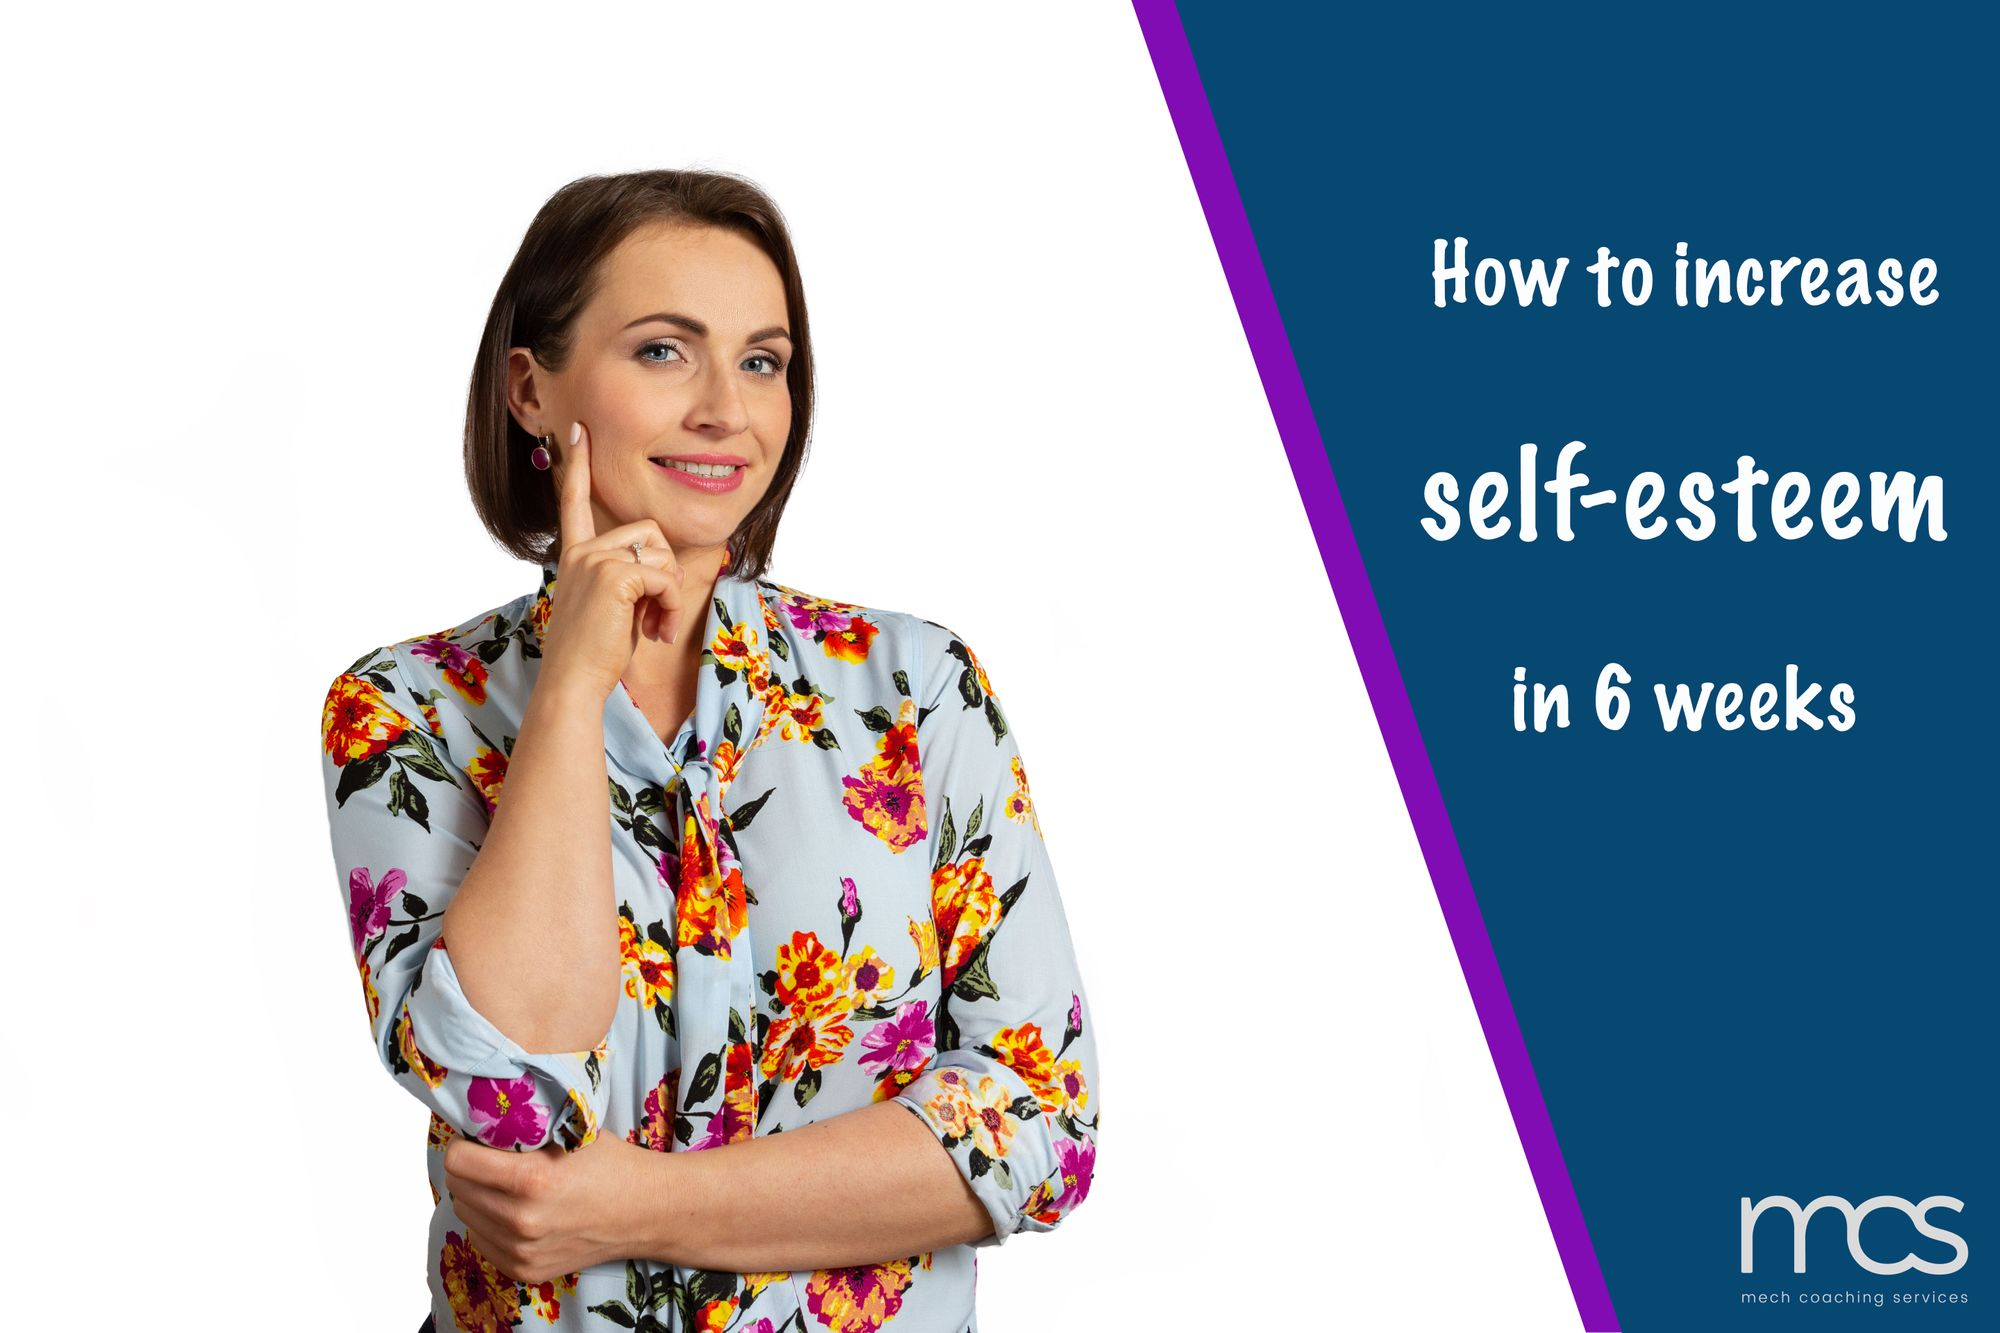 How to increase your self-esteem in 6 weeks?